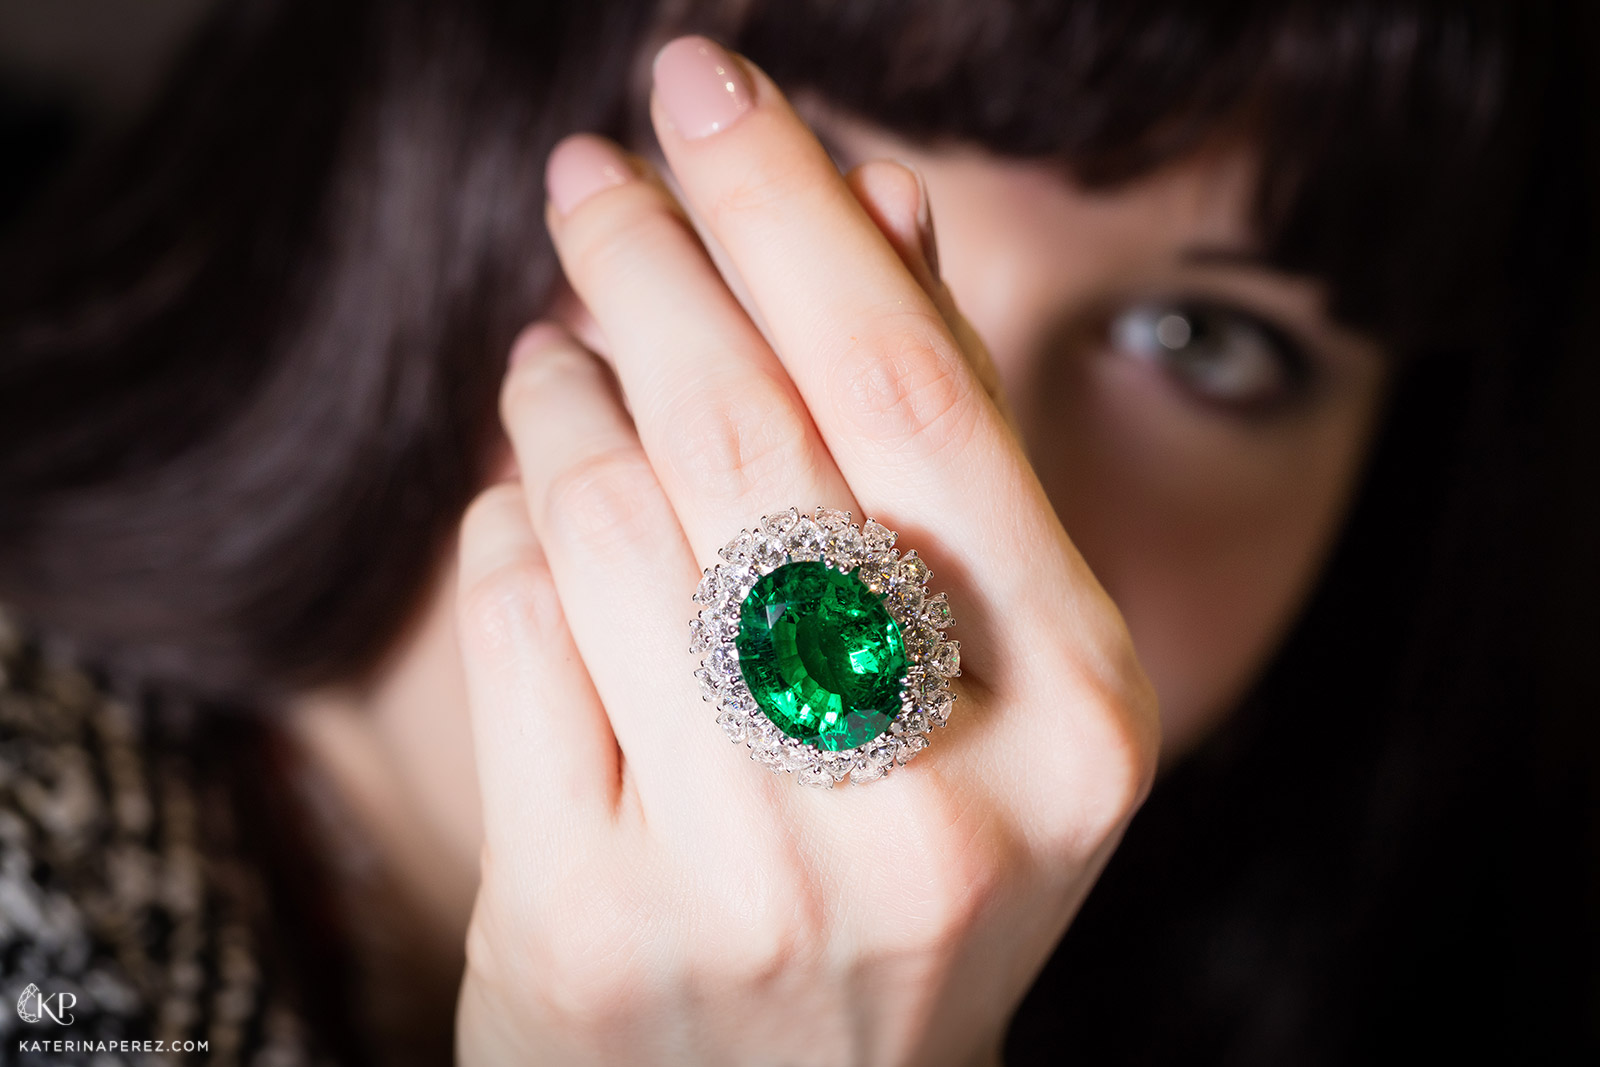 Picchiotti bombé ring with 19ct Zambian emerald and pear cut diamonds